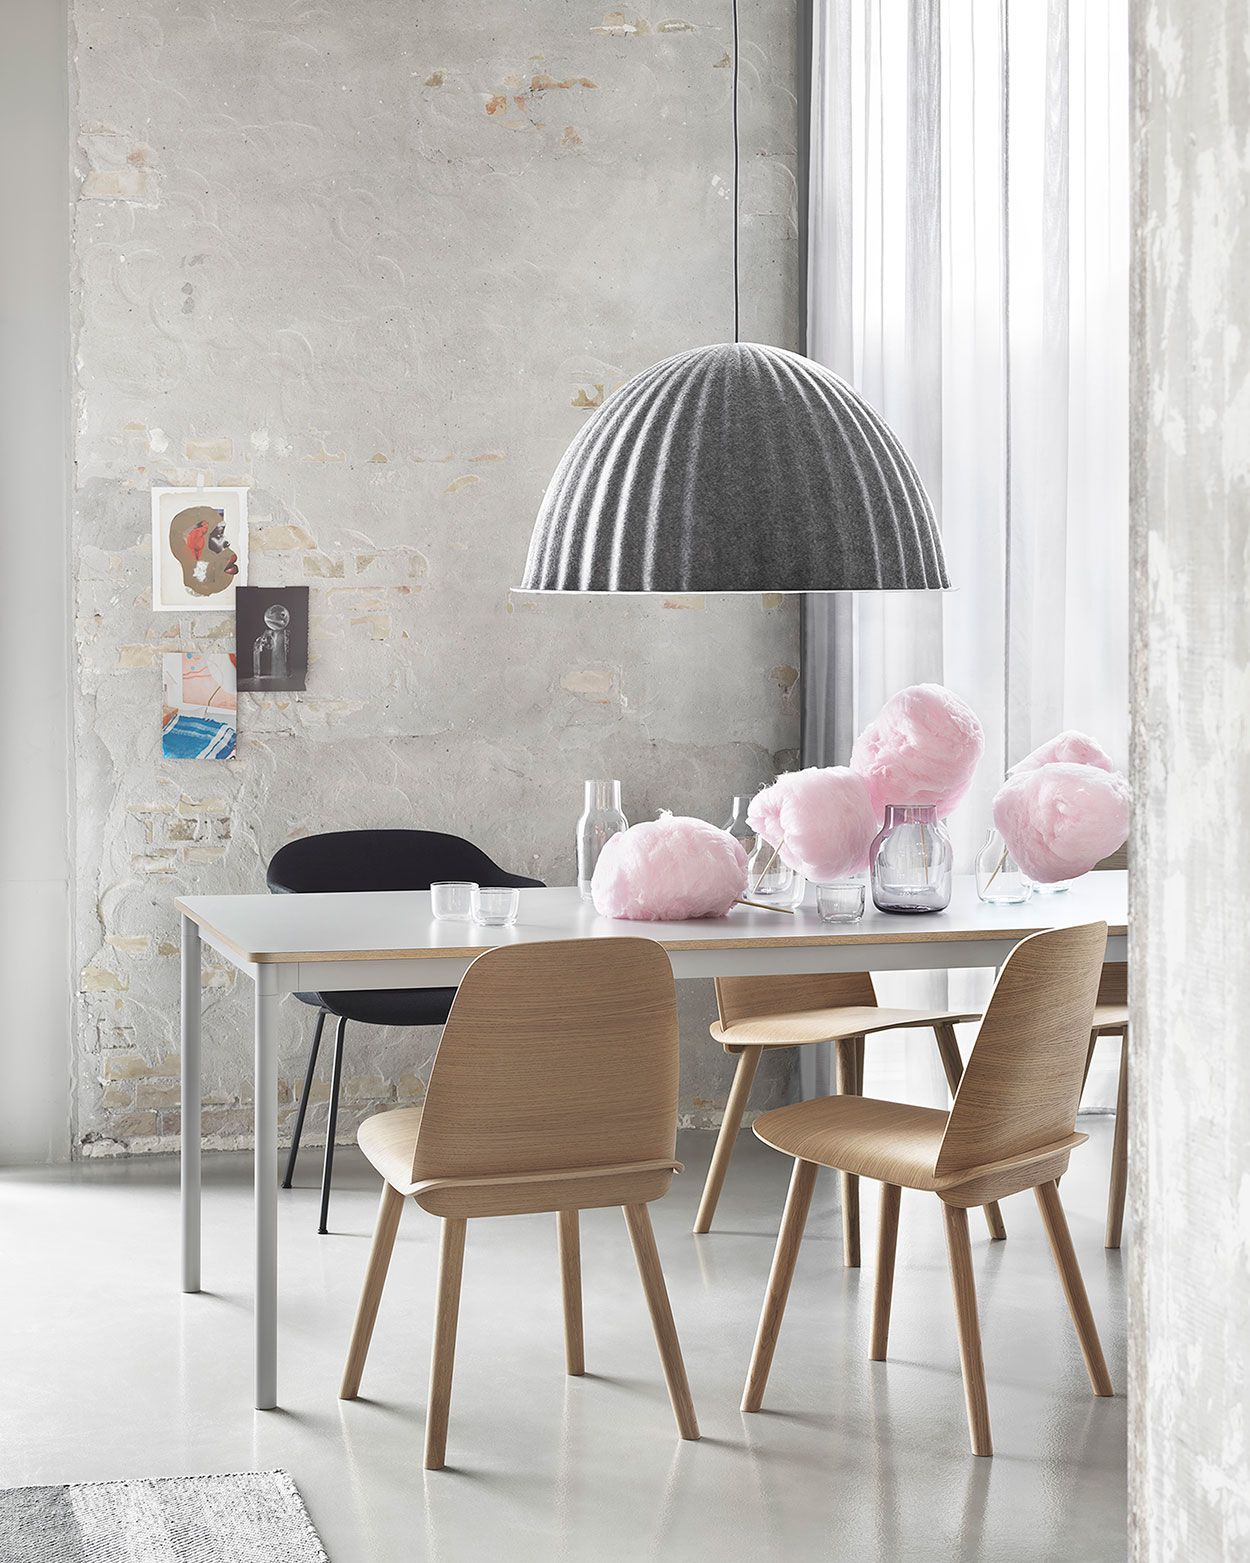 Scandinavian ligthing inspiration from muuto under the bell is a pendant lamp that is multi functional as the design not only provides an ambient light but